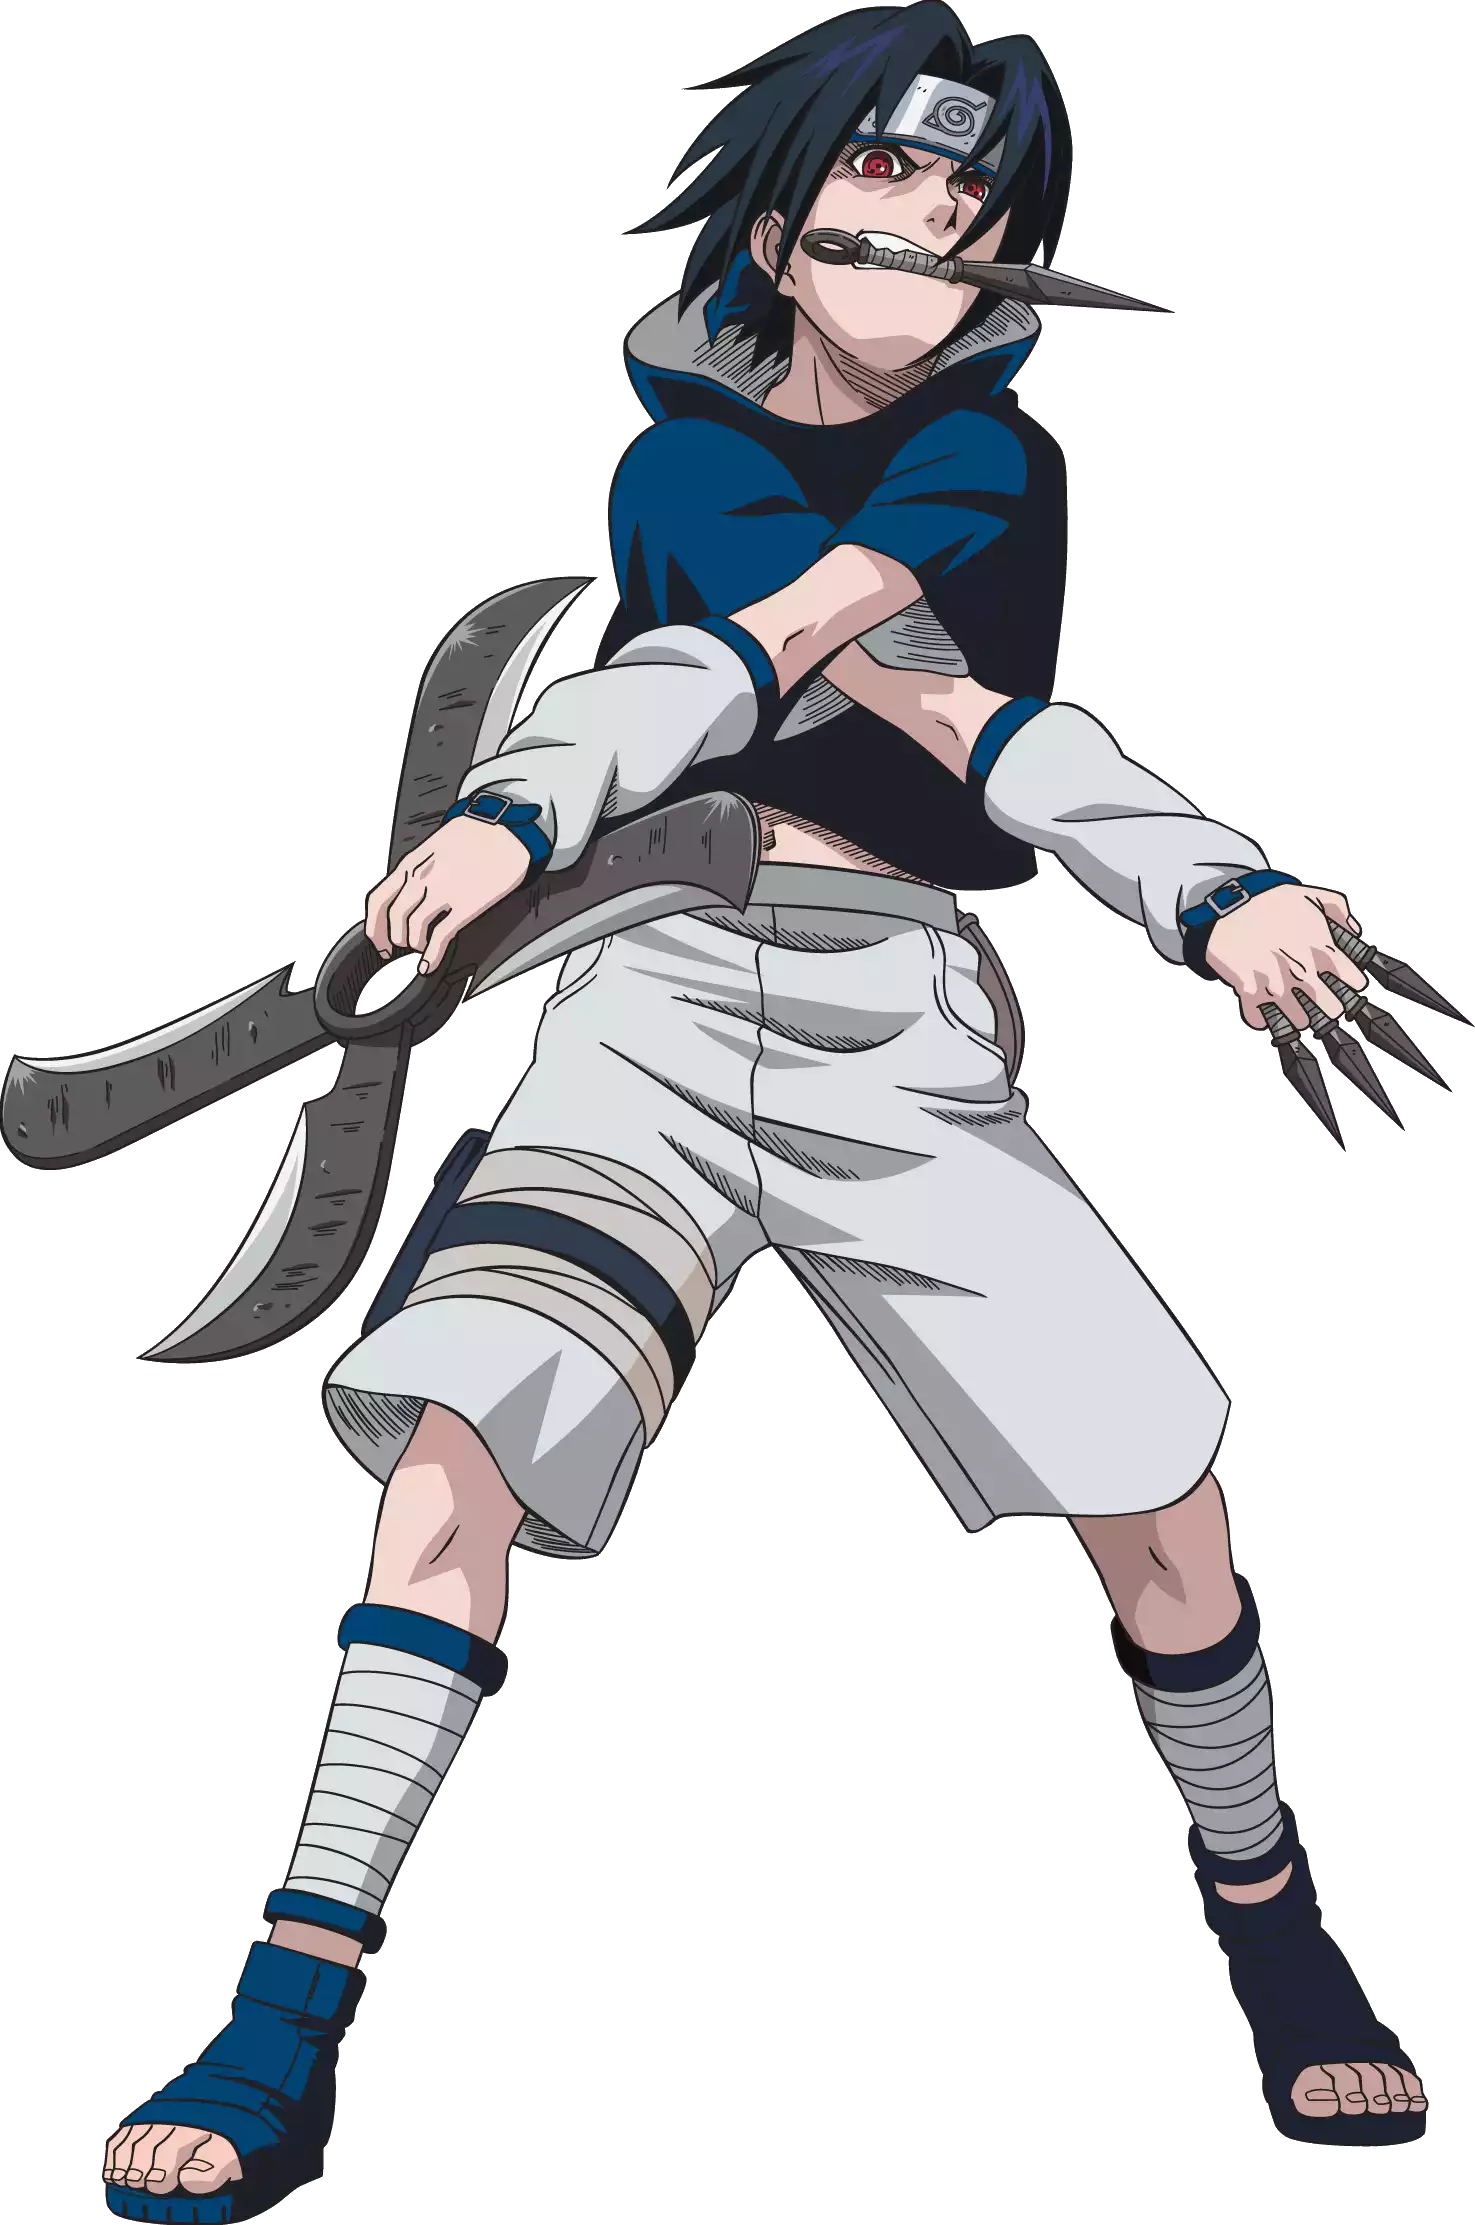 Kid sasuke png. Uchiha teenager vs battles